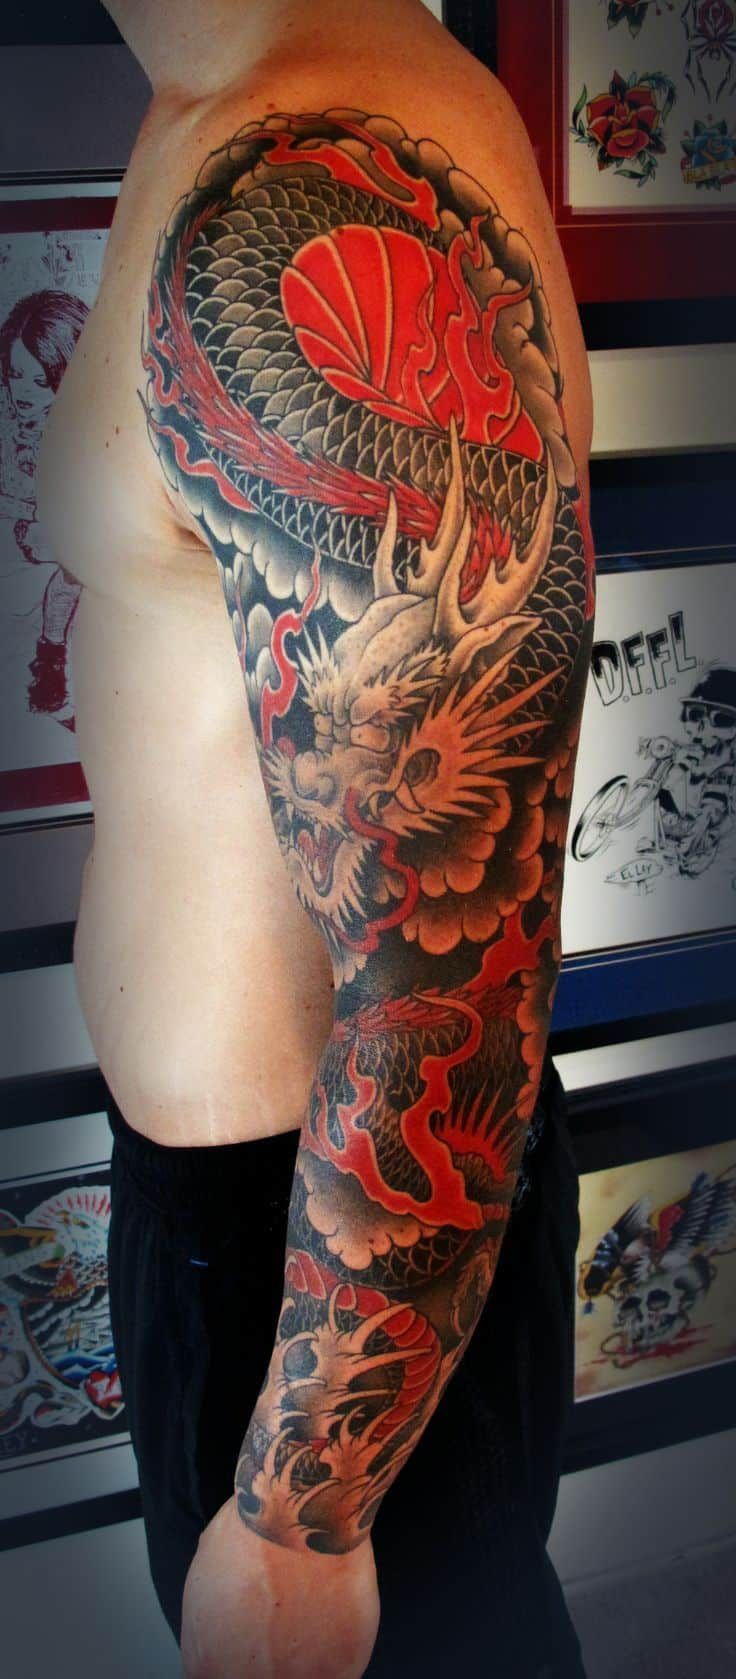 Dragon Tattoos For Men Can Symbolize Greed Power Duality Intellect Potential Dominion Nonc Dragon Sleeve Tattoos Tattoos For Guys Japanese Dragon Tattoos